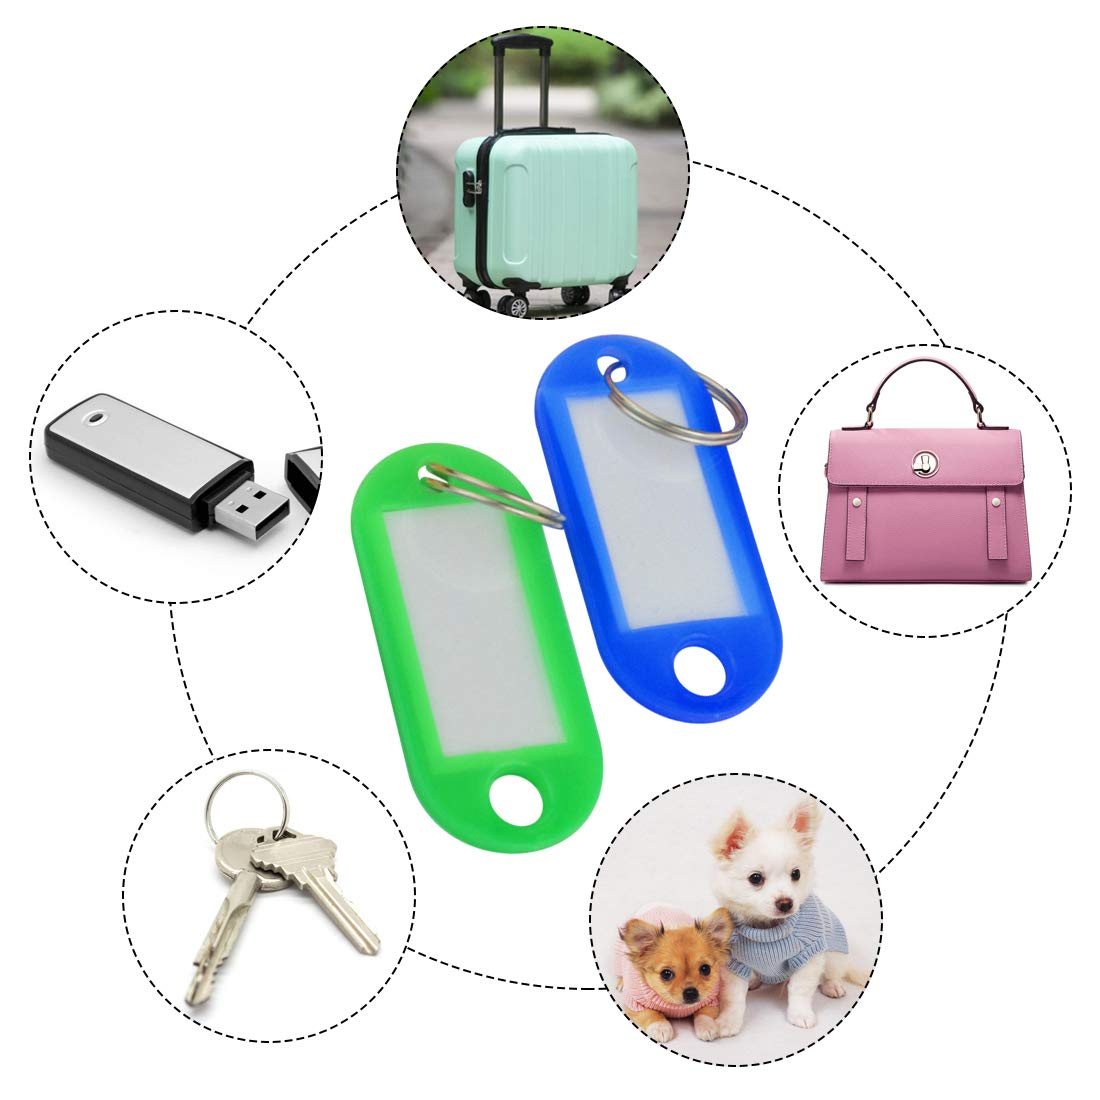 Yolyoo 100 Pack Tough Plastic Key Tags with Label Window 10 Colors